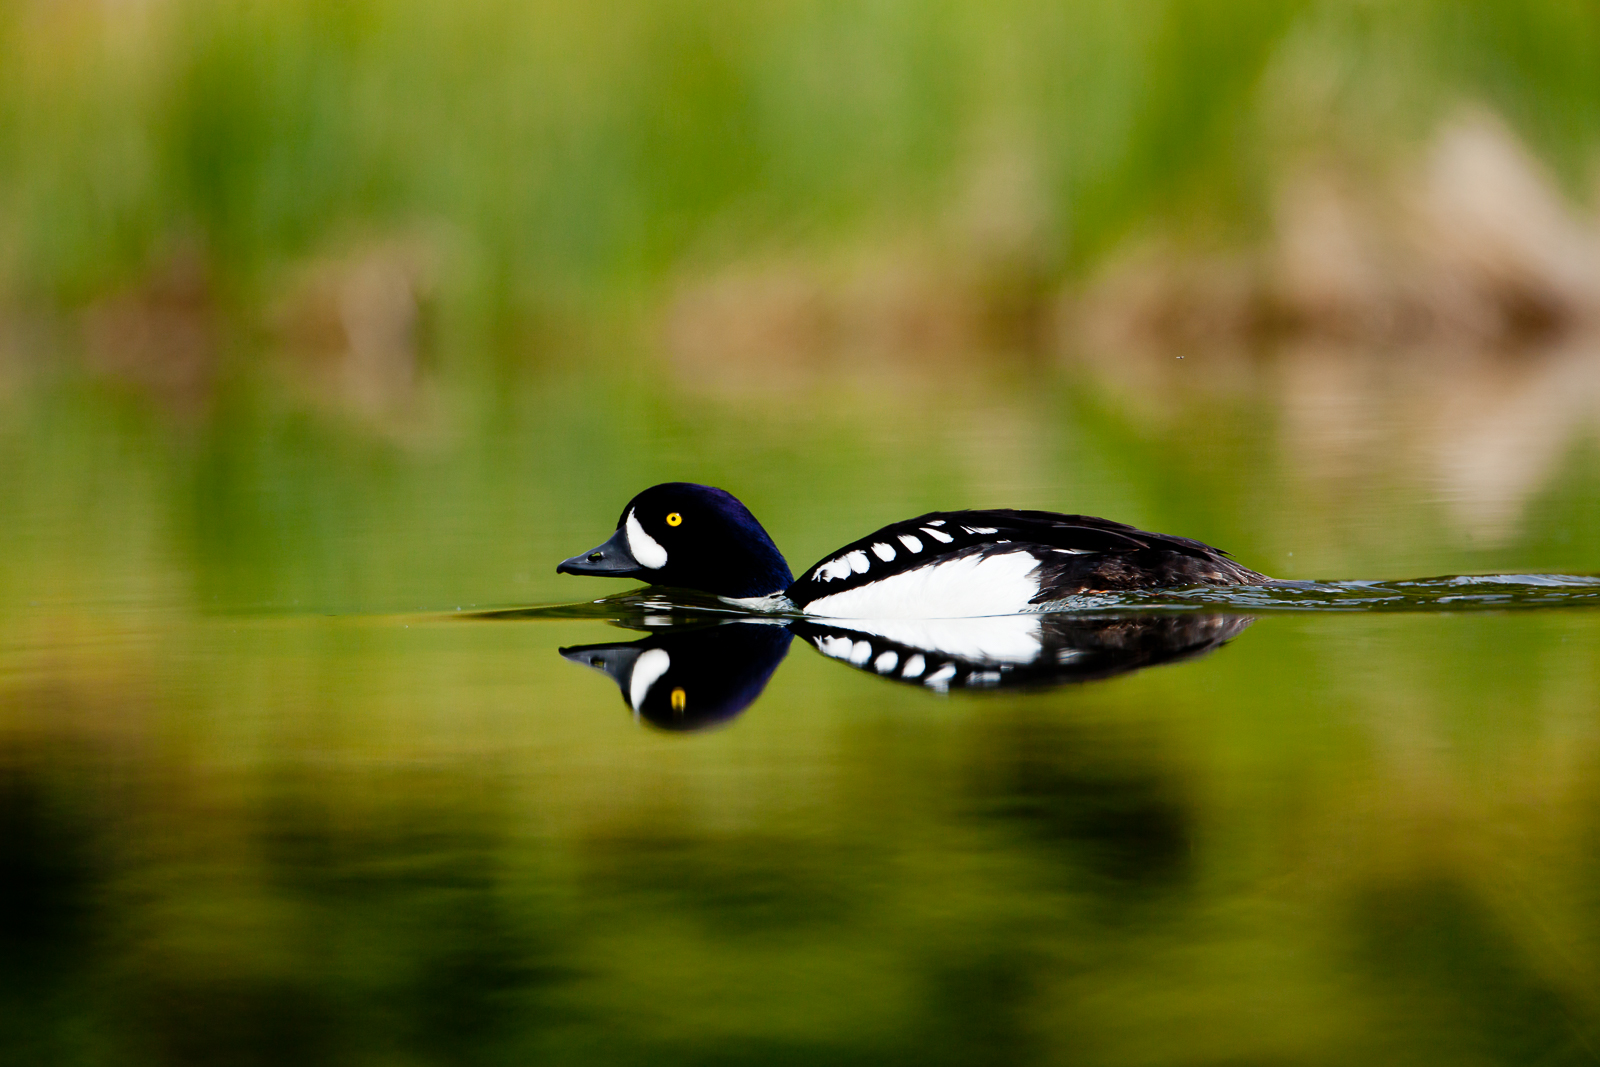 Barrow's Goldeneye protects his mate from another male to ensure his companionship.